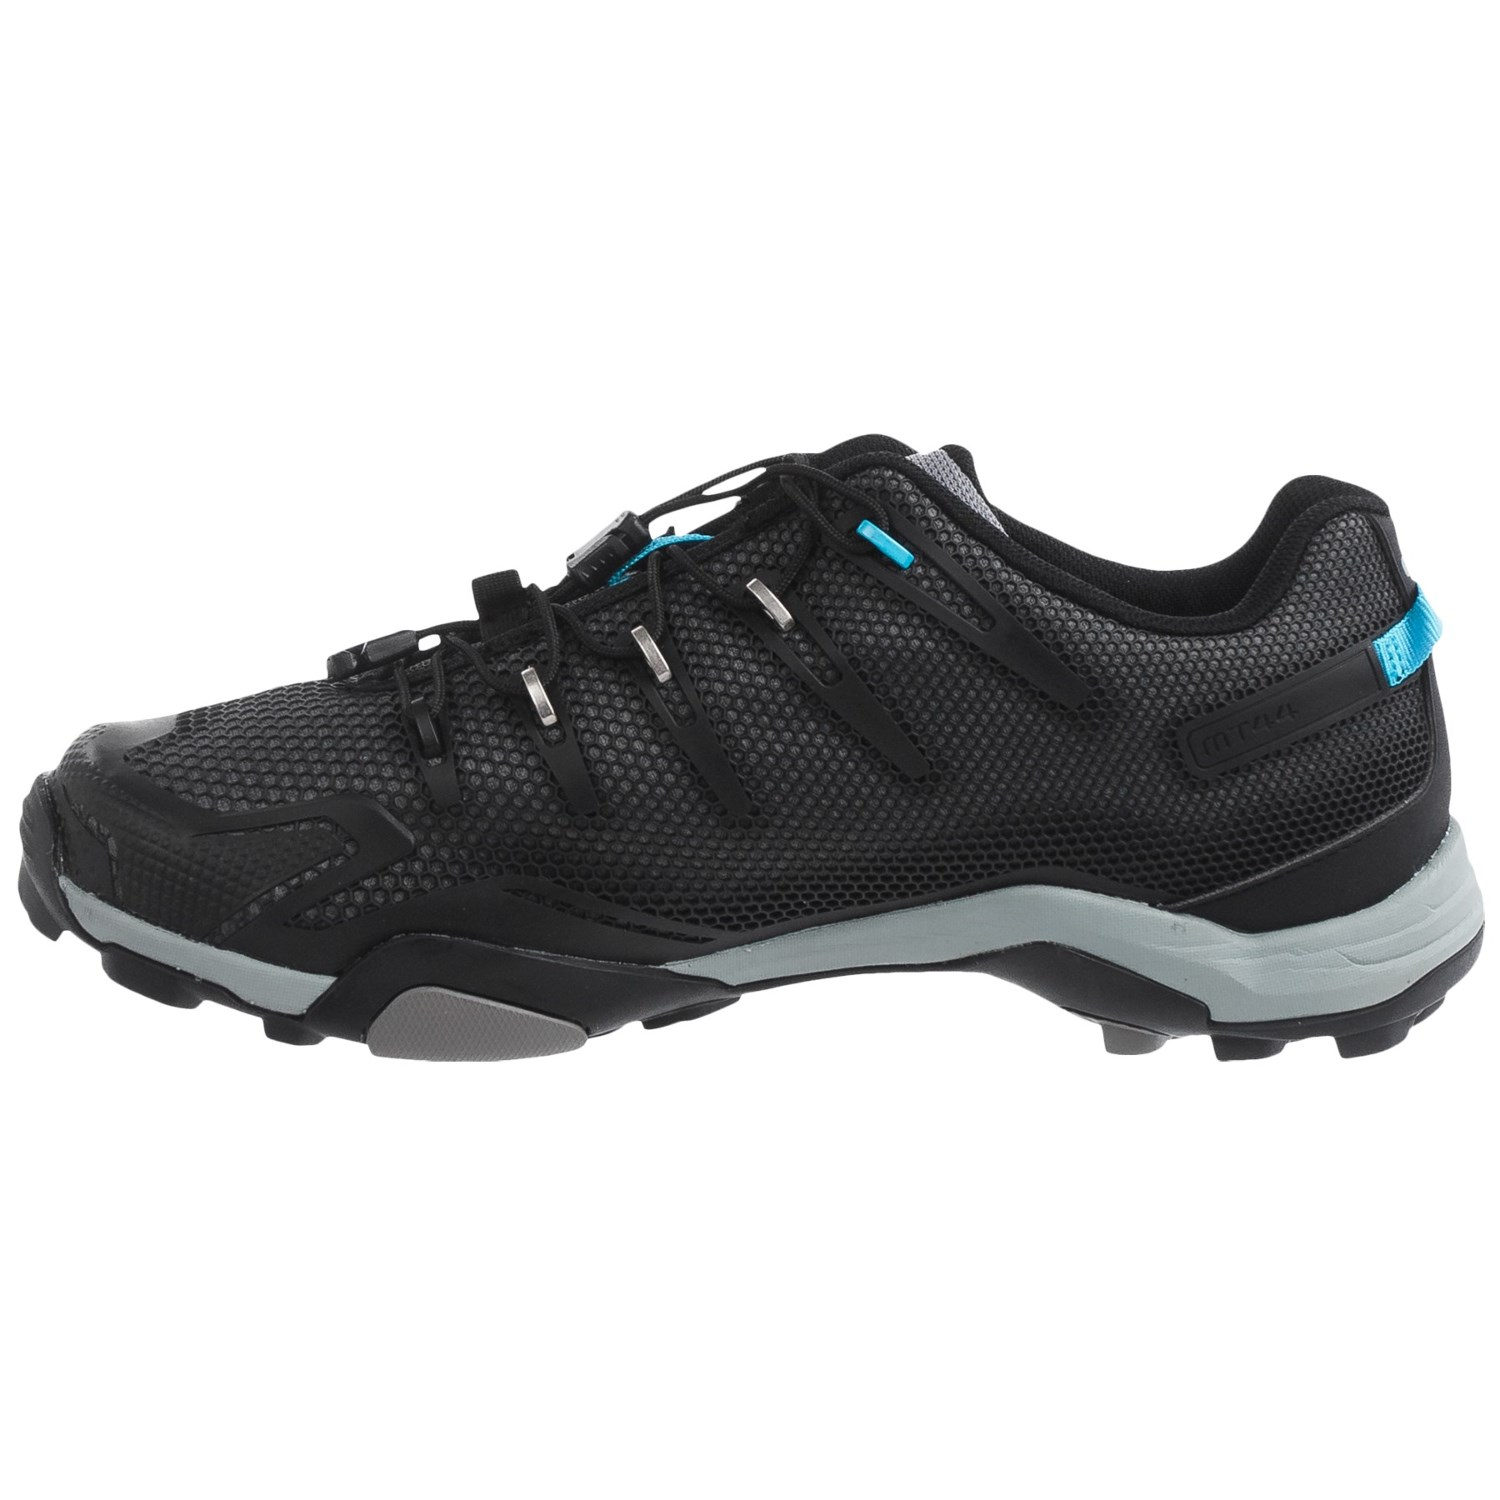 Buy Cycling Shoes Online Australia